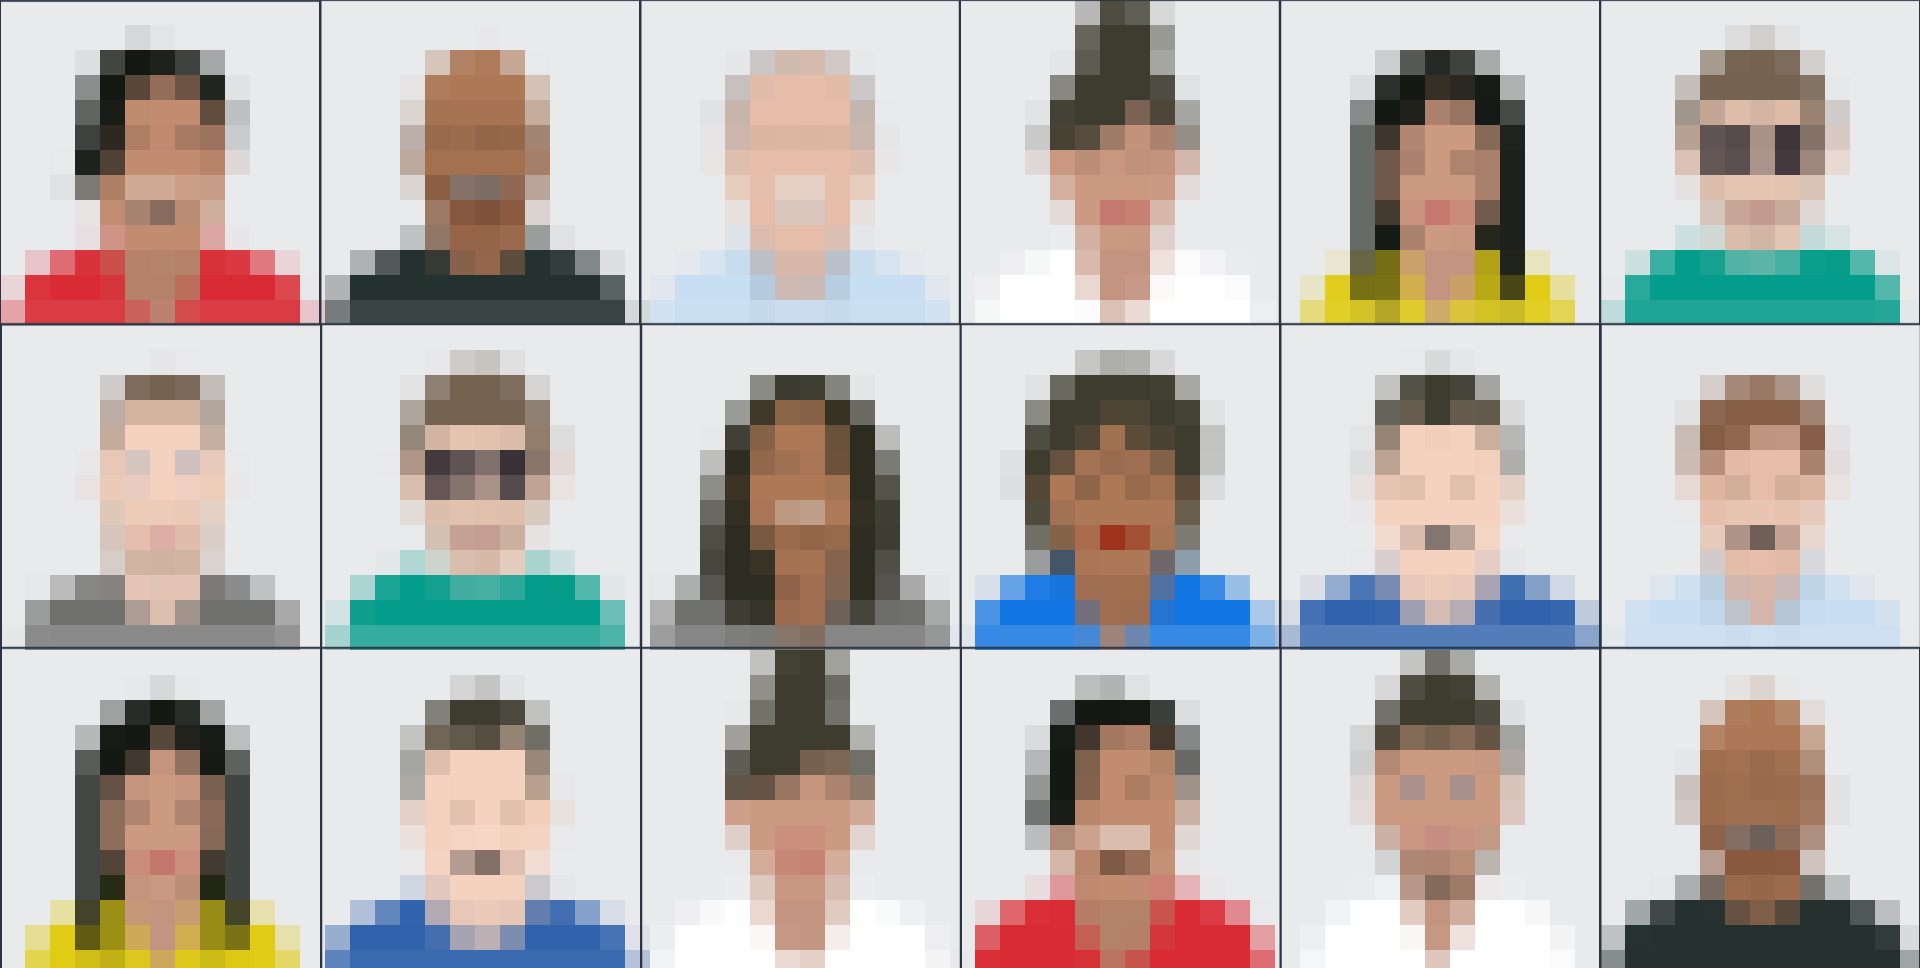 Kairos: 60 Facial Recognition Databases